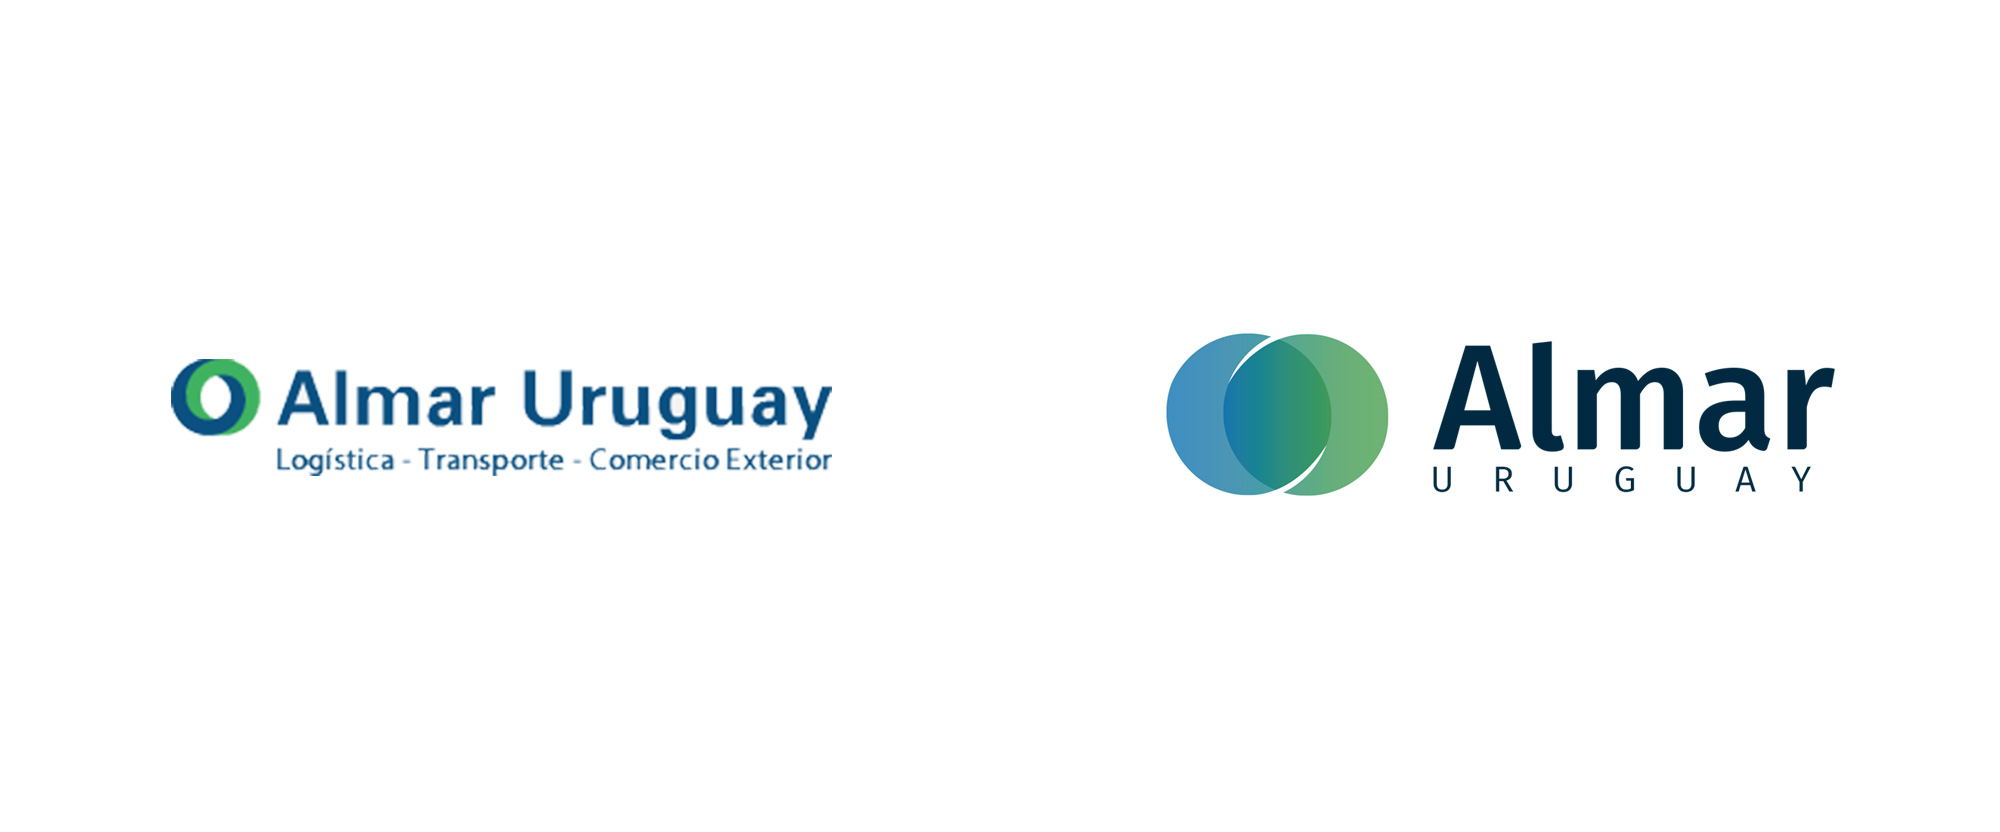 New Logo for Almar Uruguay by Cruz Creative